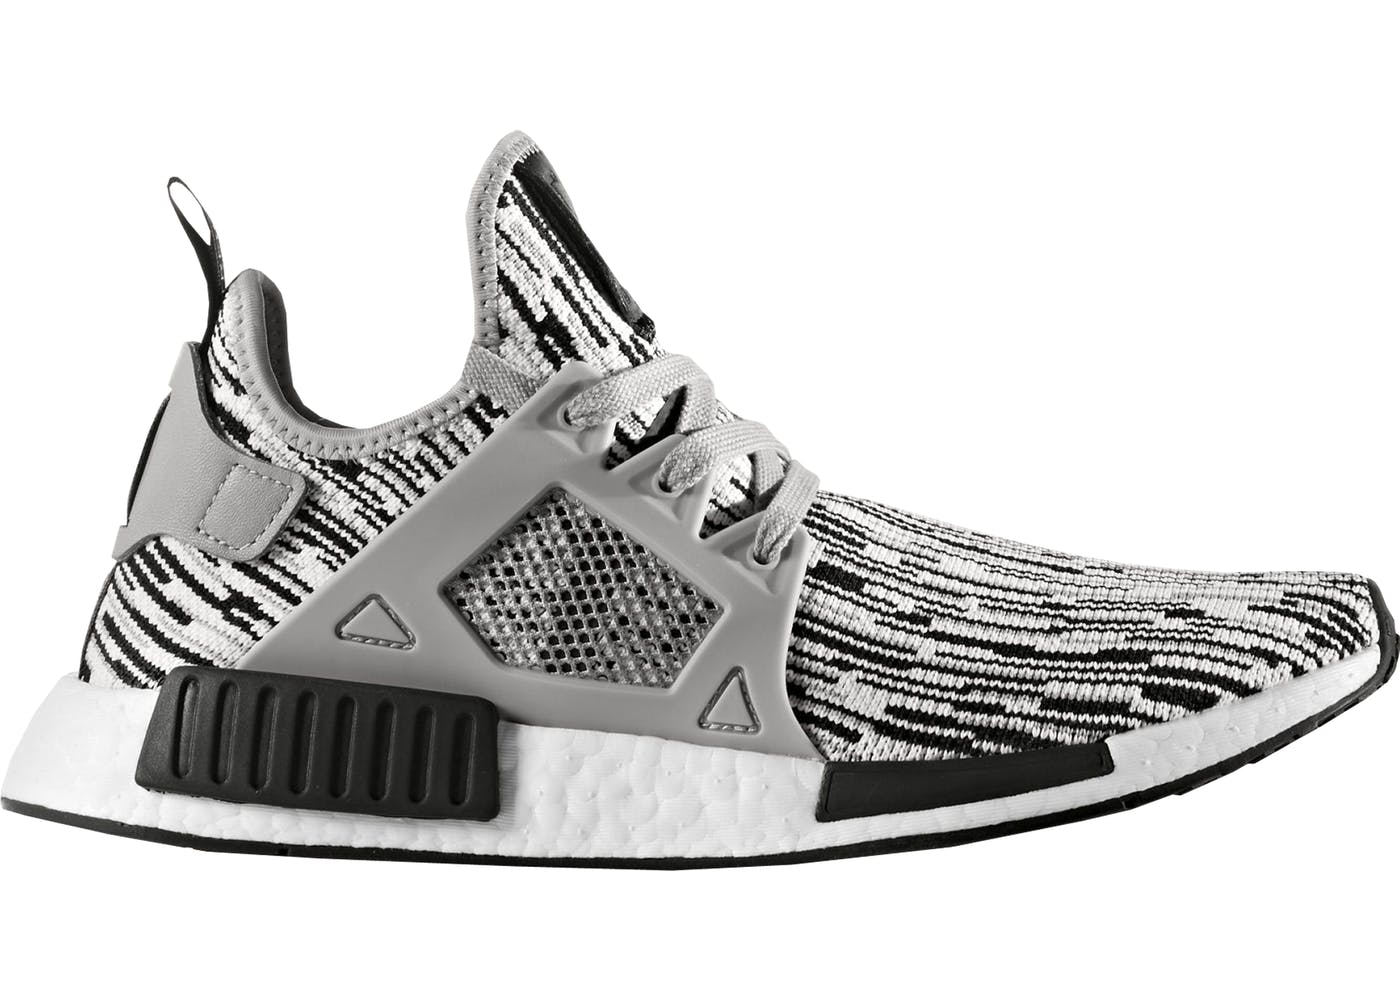 Adidas Nmd Xr1 Pk S32216 Size 7 Glitch Camo White Black Boost